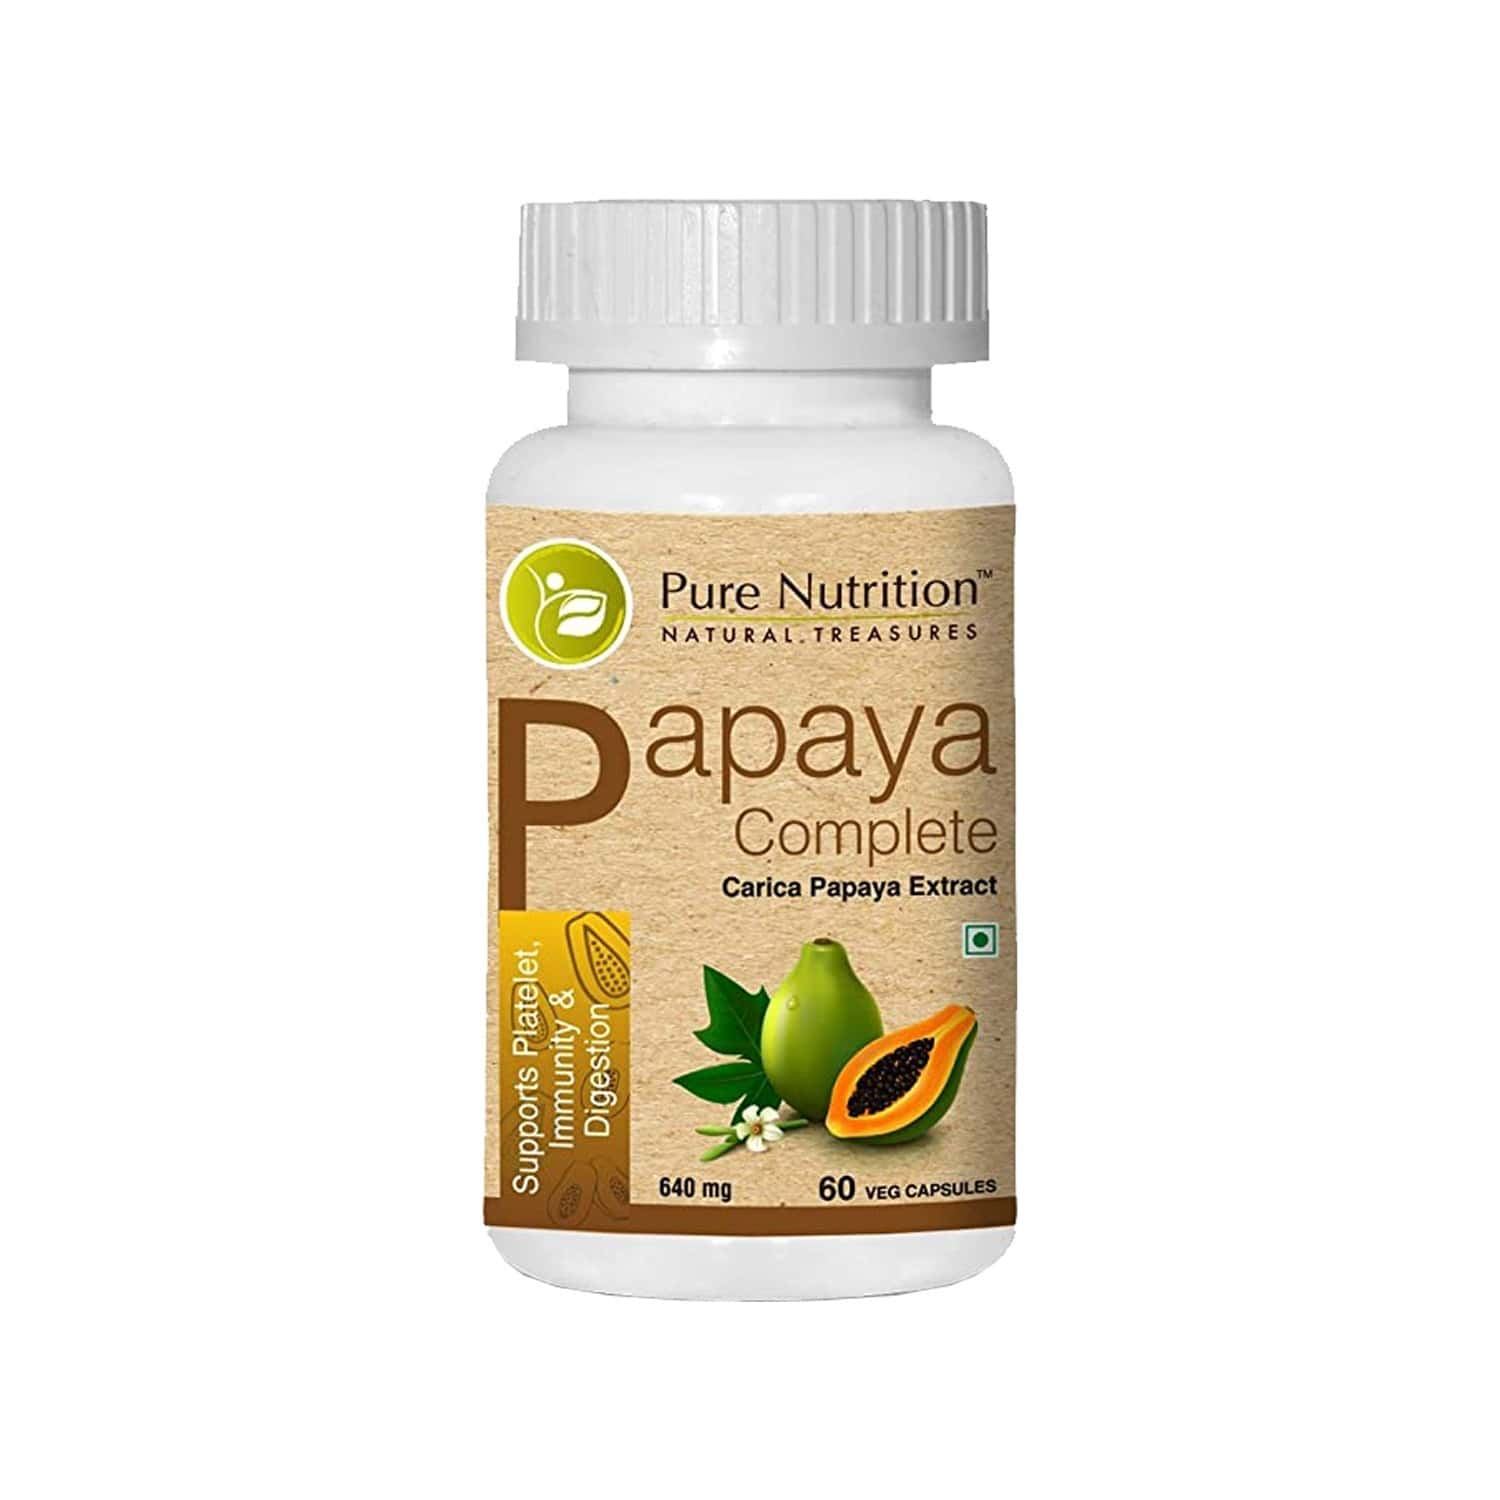 Pure Nutrition Papaya Complete 640 Mg, With Vitamin C, Vitamin A & Iron, Supports Platelet, Immunity & Digestion - 60 Veg Capsules